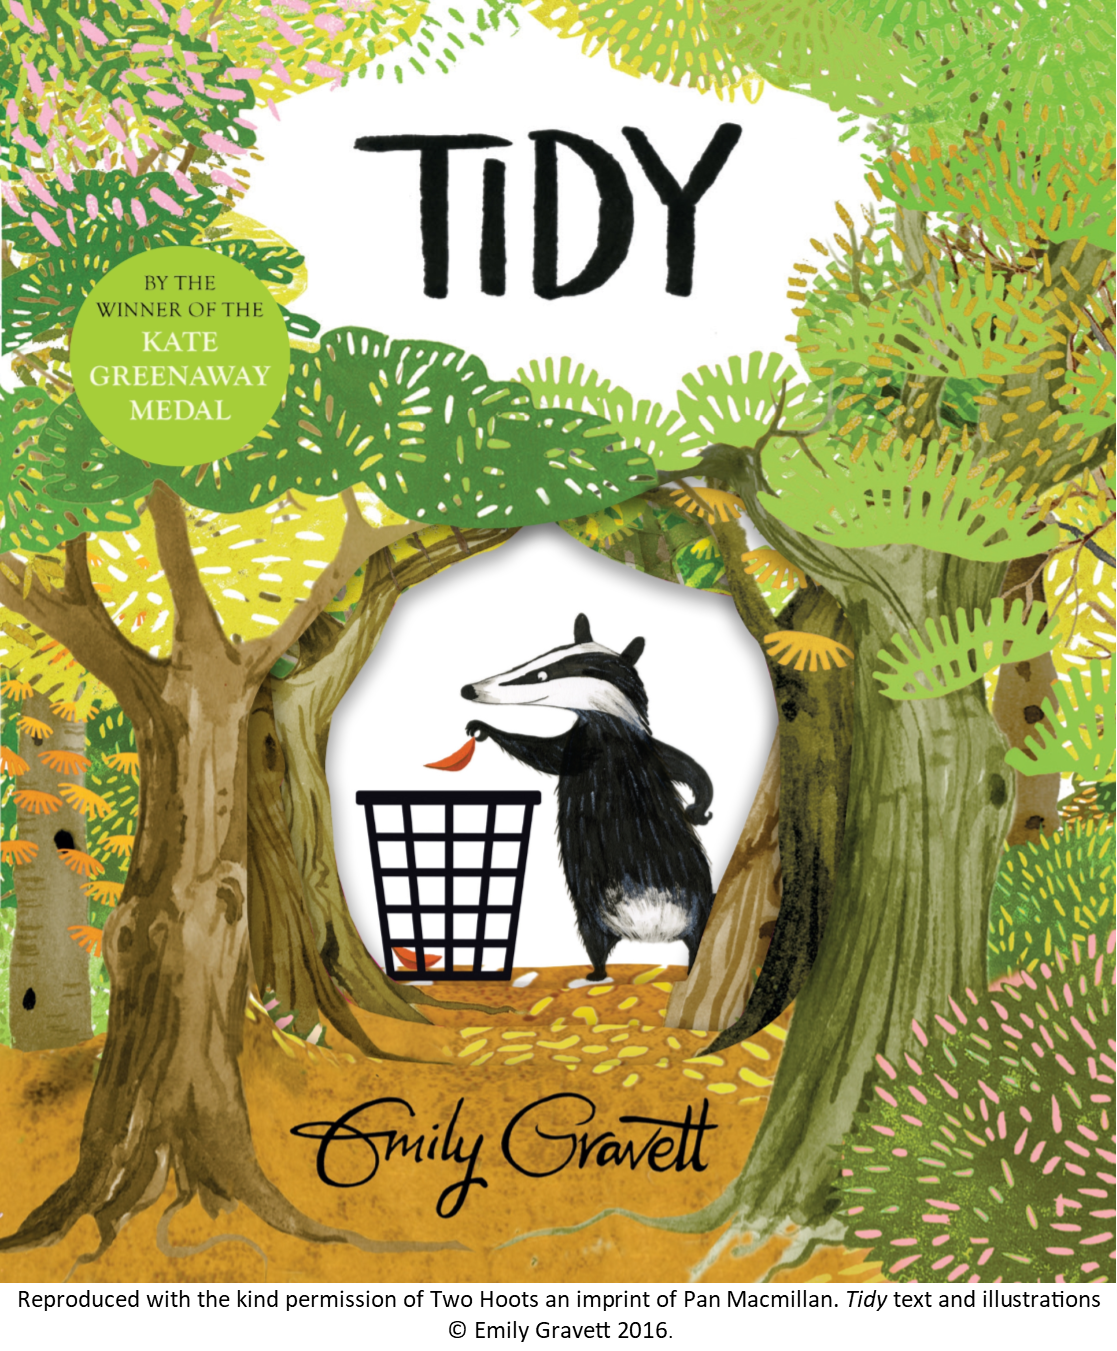 Image of the cover of Emily Gravett's book Tidy